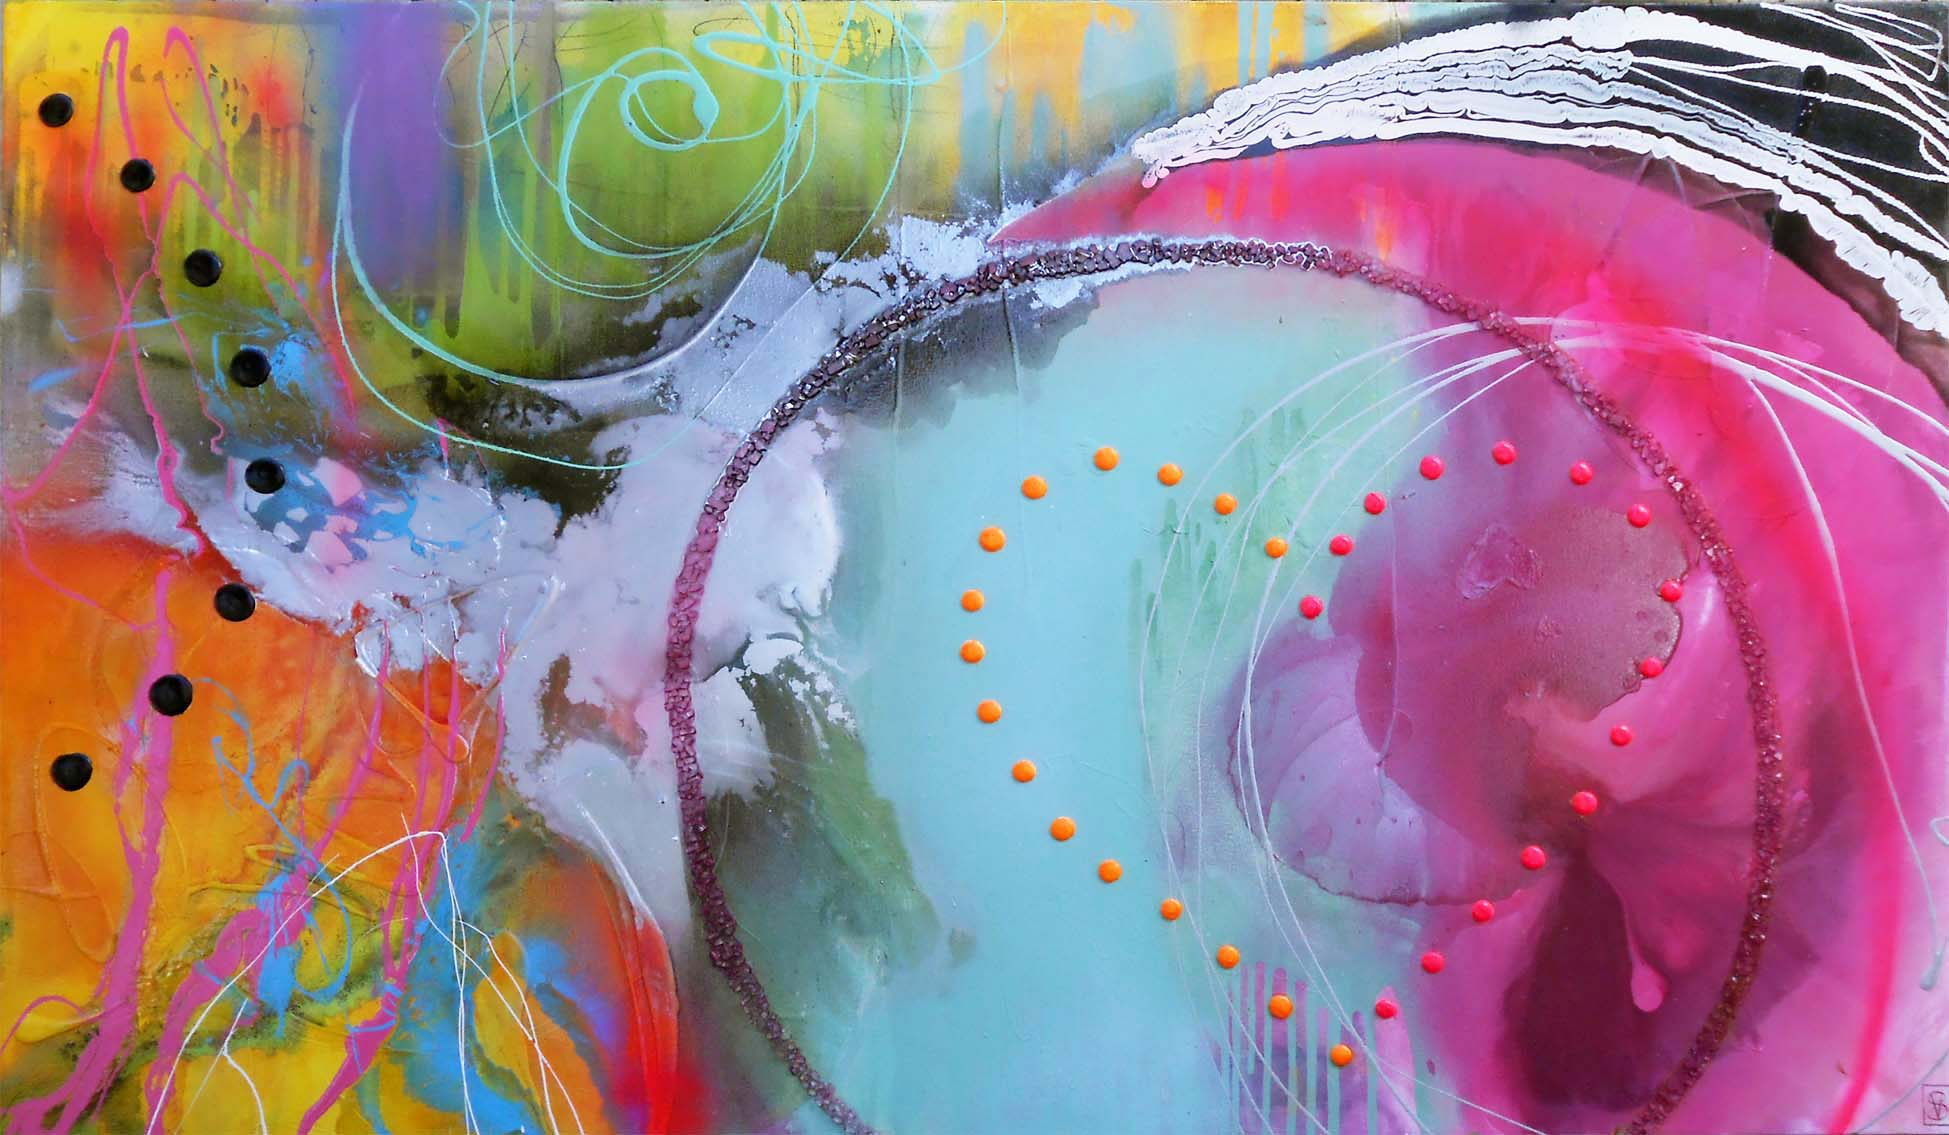 Vicky Sanders Abstract - Candy Heart